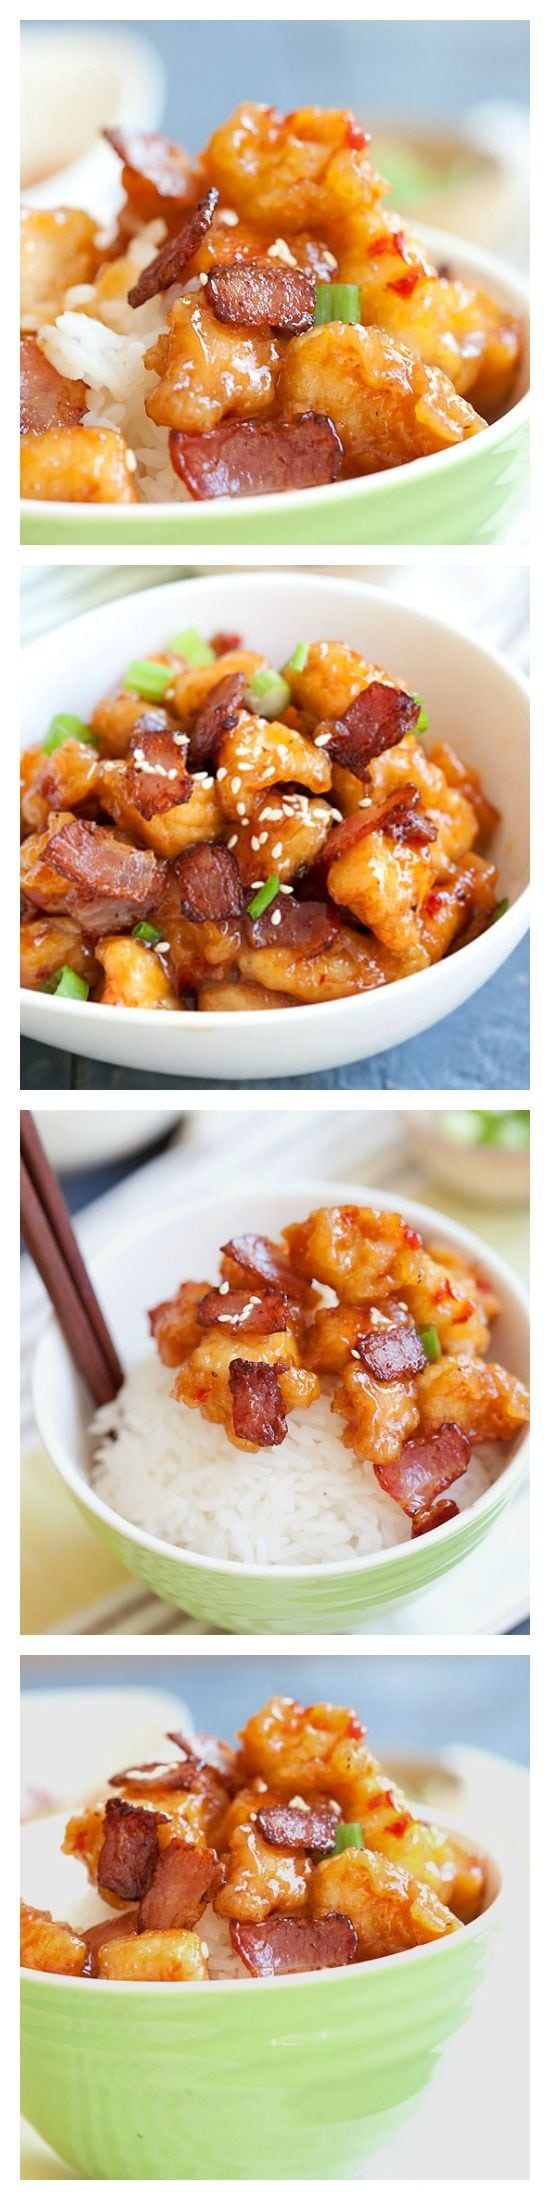 Panda Express Orange Chicken with Bacon Copycat recipe. Make it at home in 20 minutes!   rasamalaysia.com